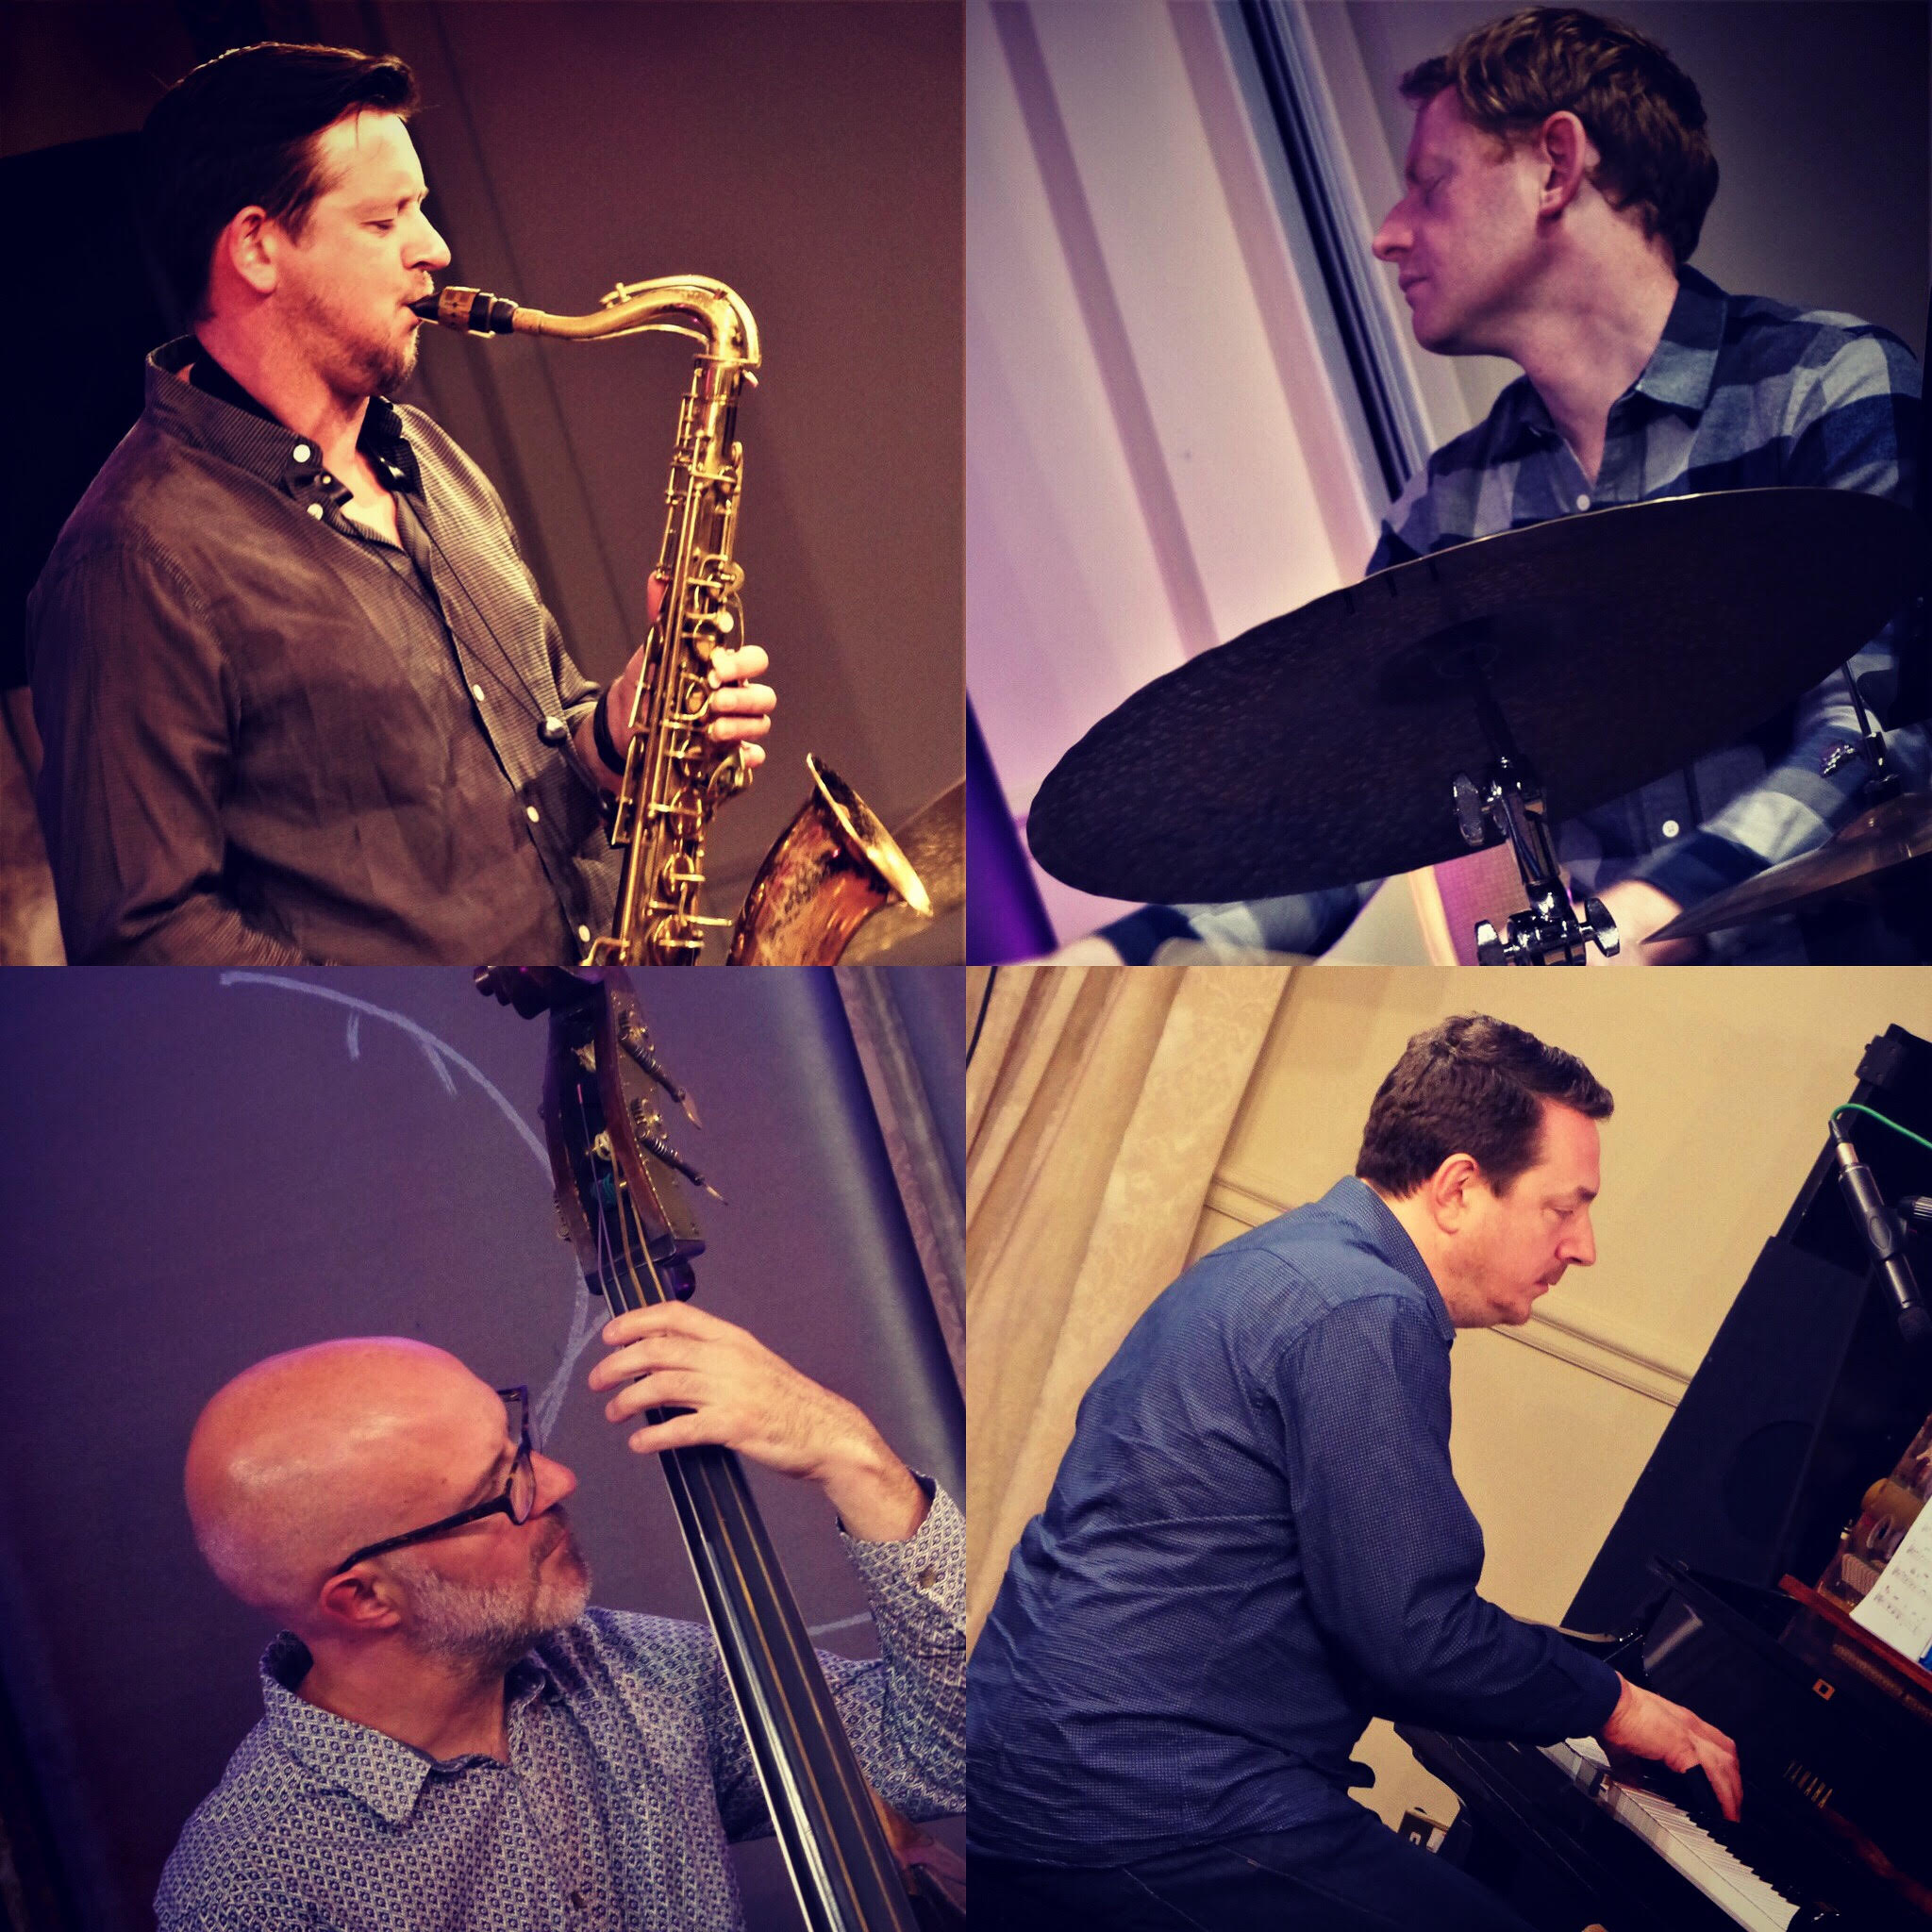 Clockwise, from top left: Paul Booth, Andrew Bain, Steve Hamilton, Dave Whitford.